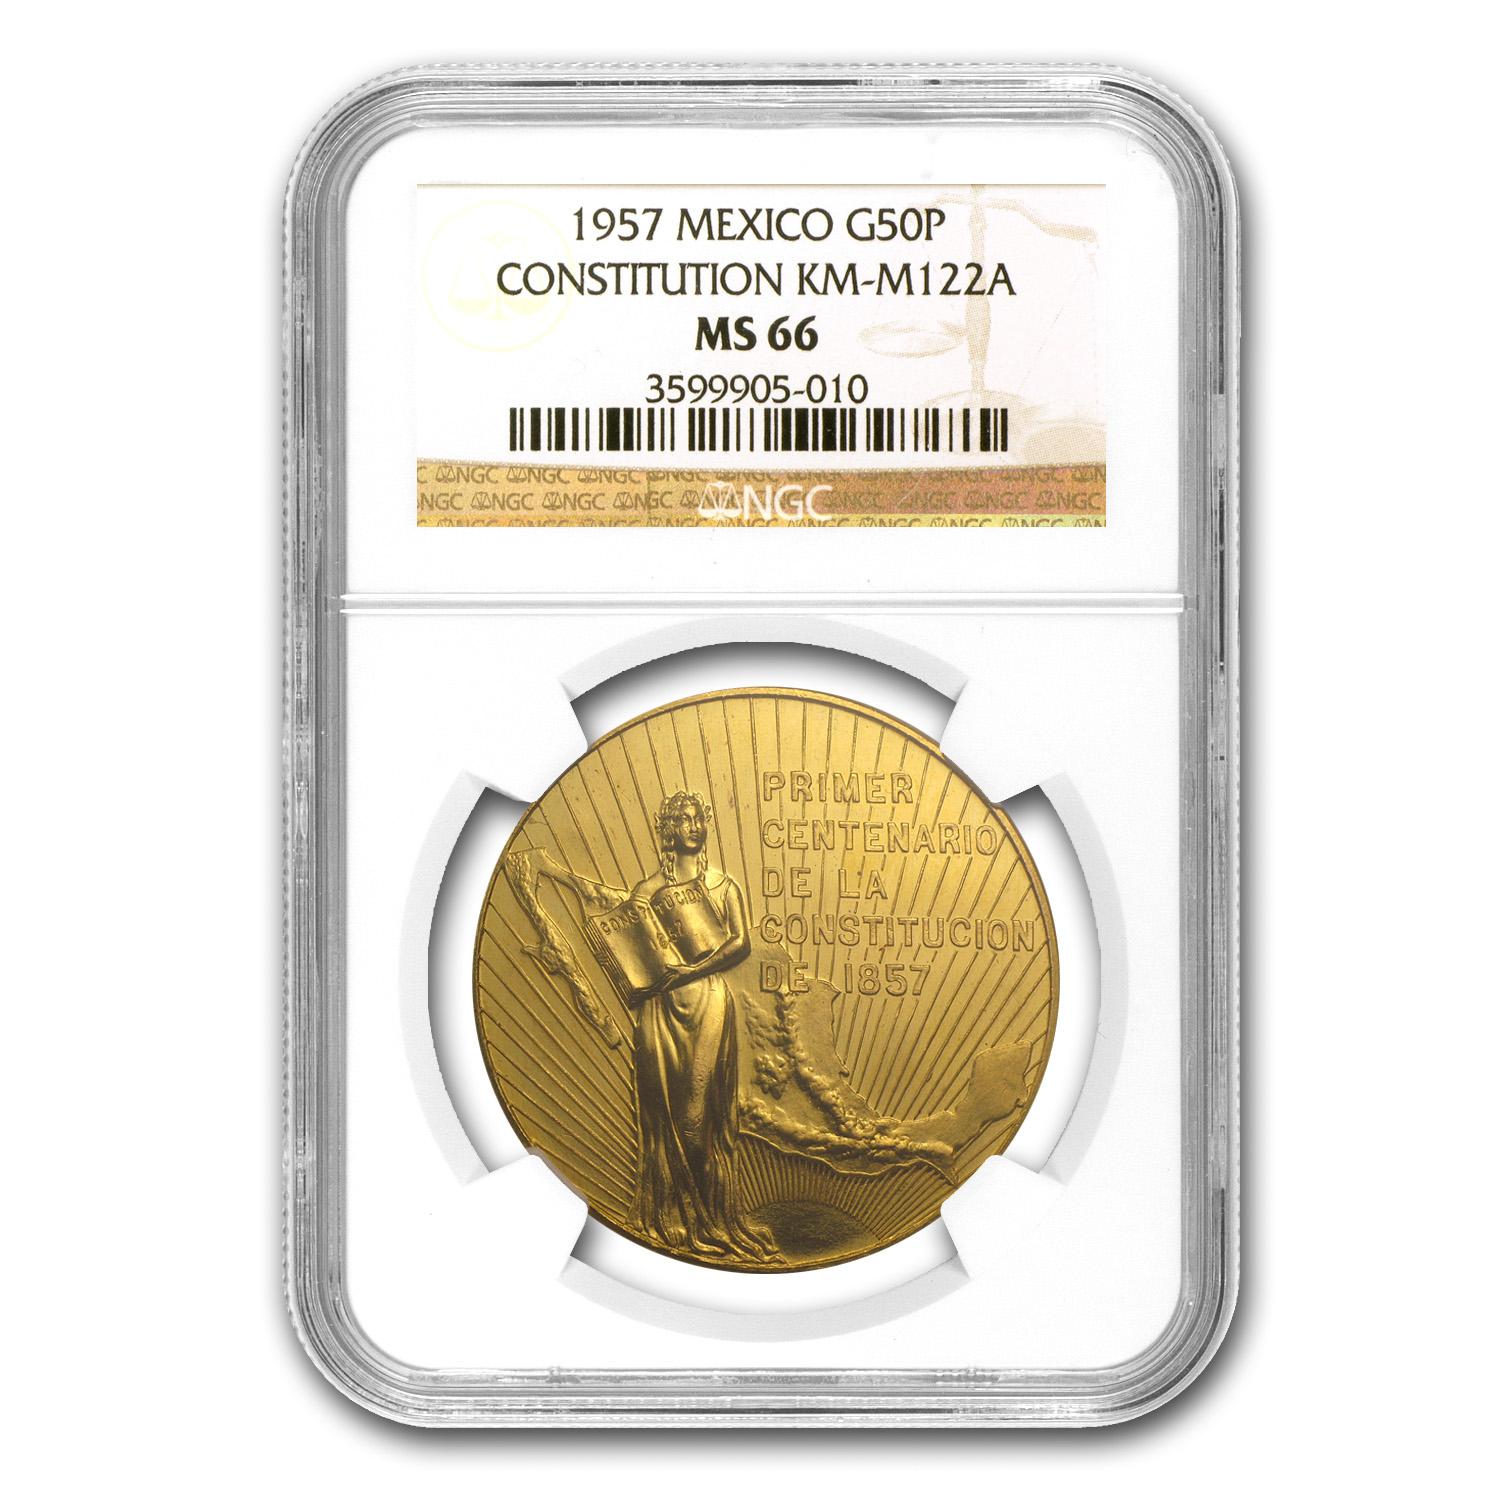 1957 Mexico Centennial of Constitution Medal - MS-66 NGC